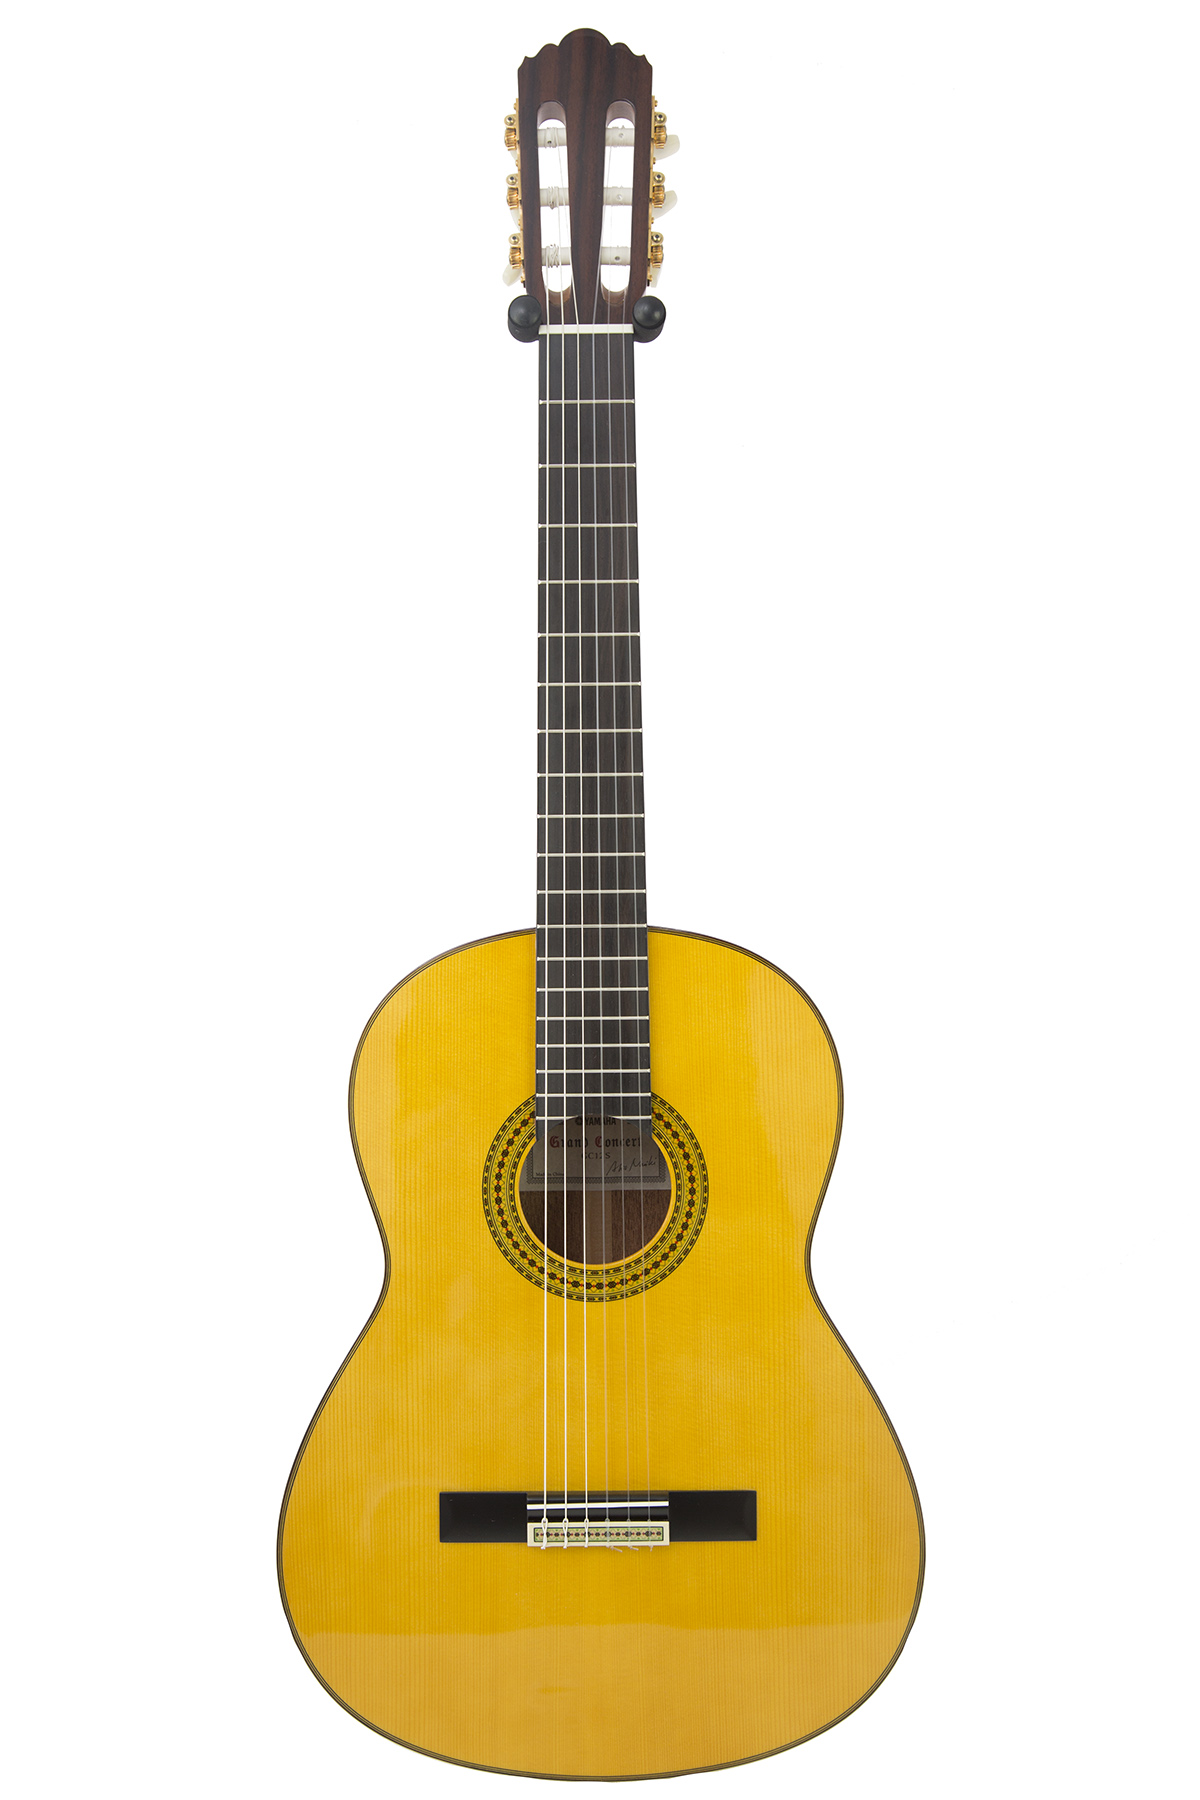 brand new yamaha gc12s classical guitar natural new york music emporium. Black Bedroom Furniture Sets. Home Design Ideas